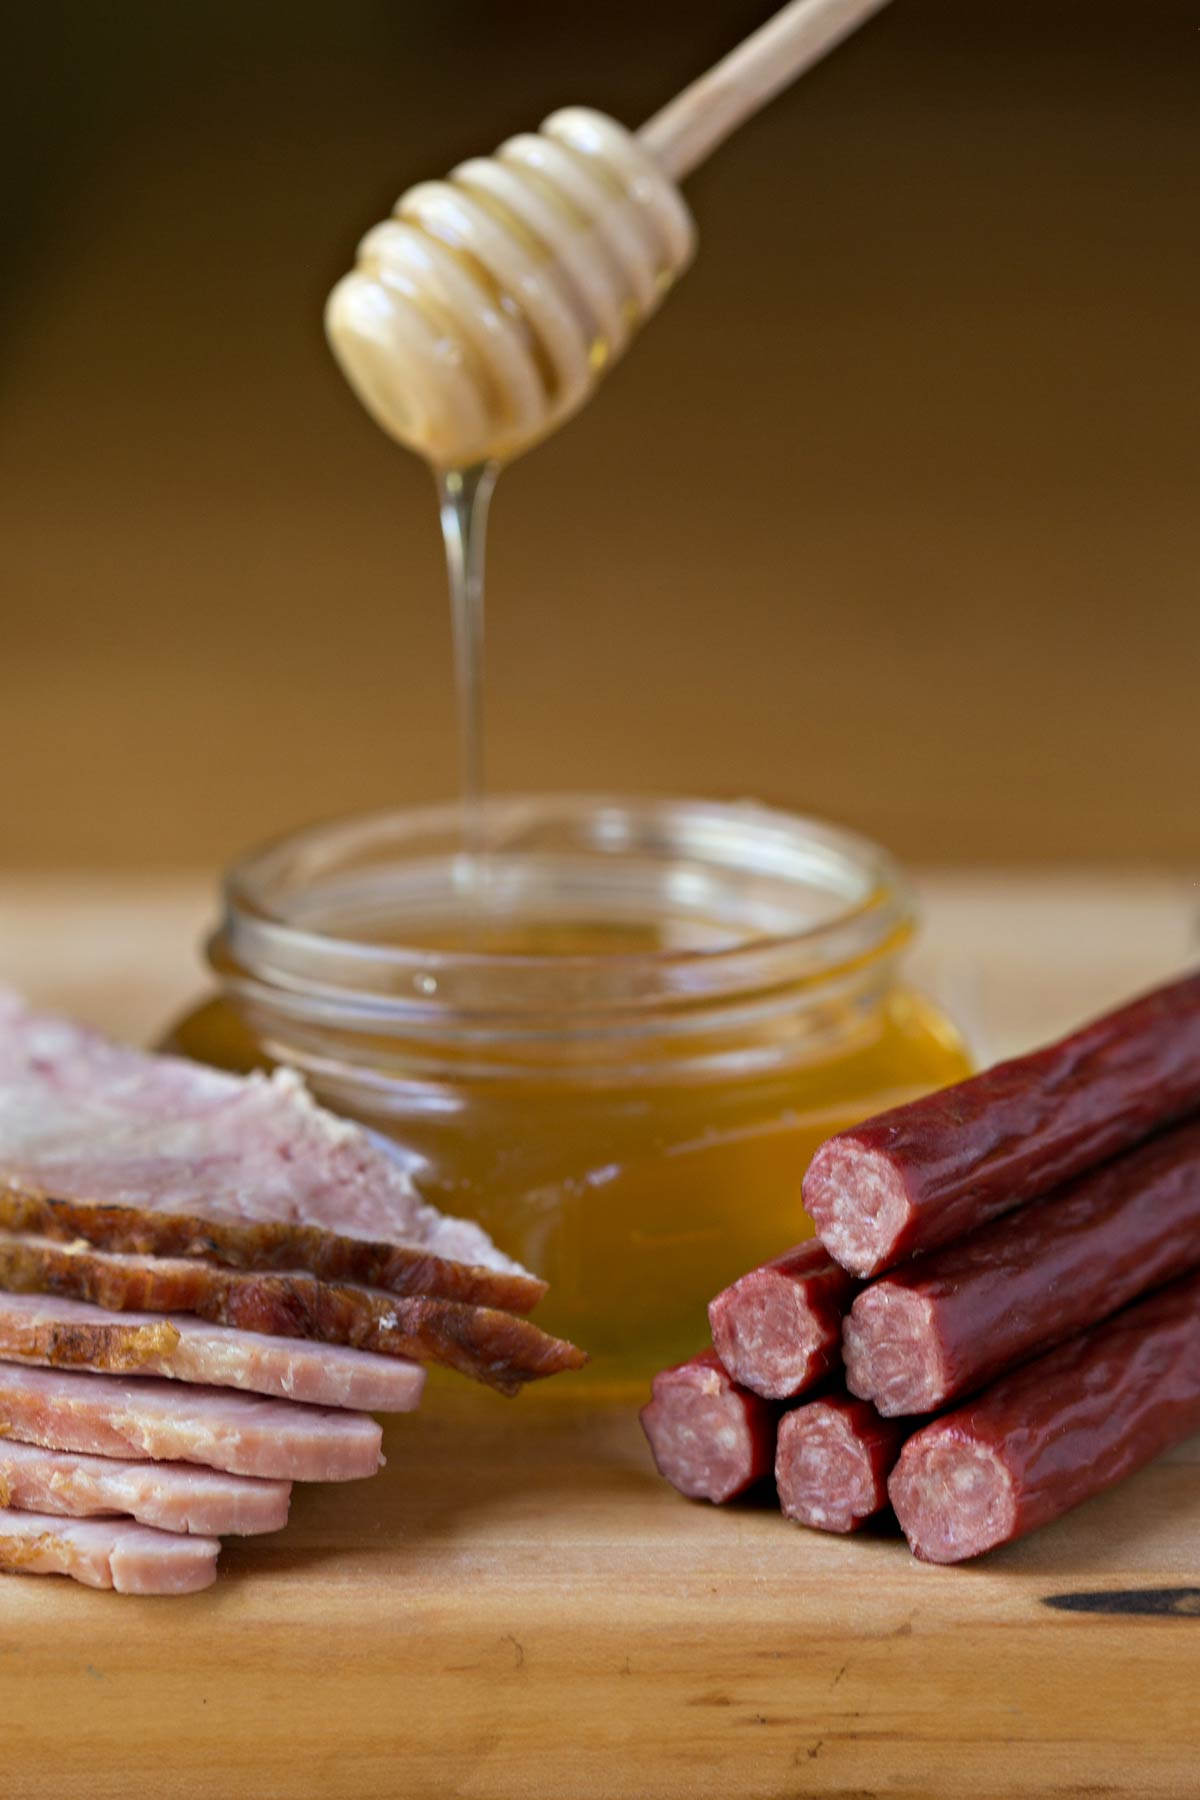 Timber Ridge Beef Daybreak Sticks - Honey Ham Flavor